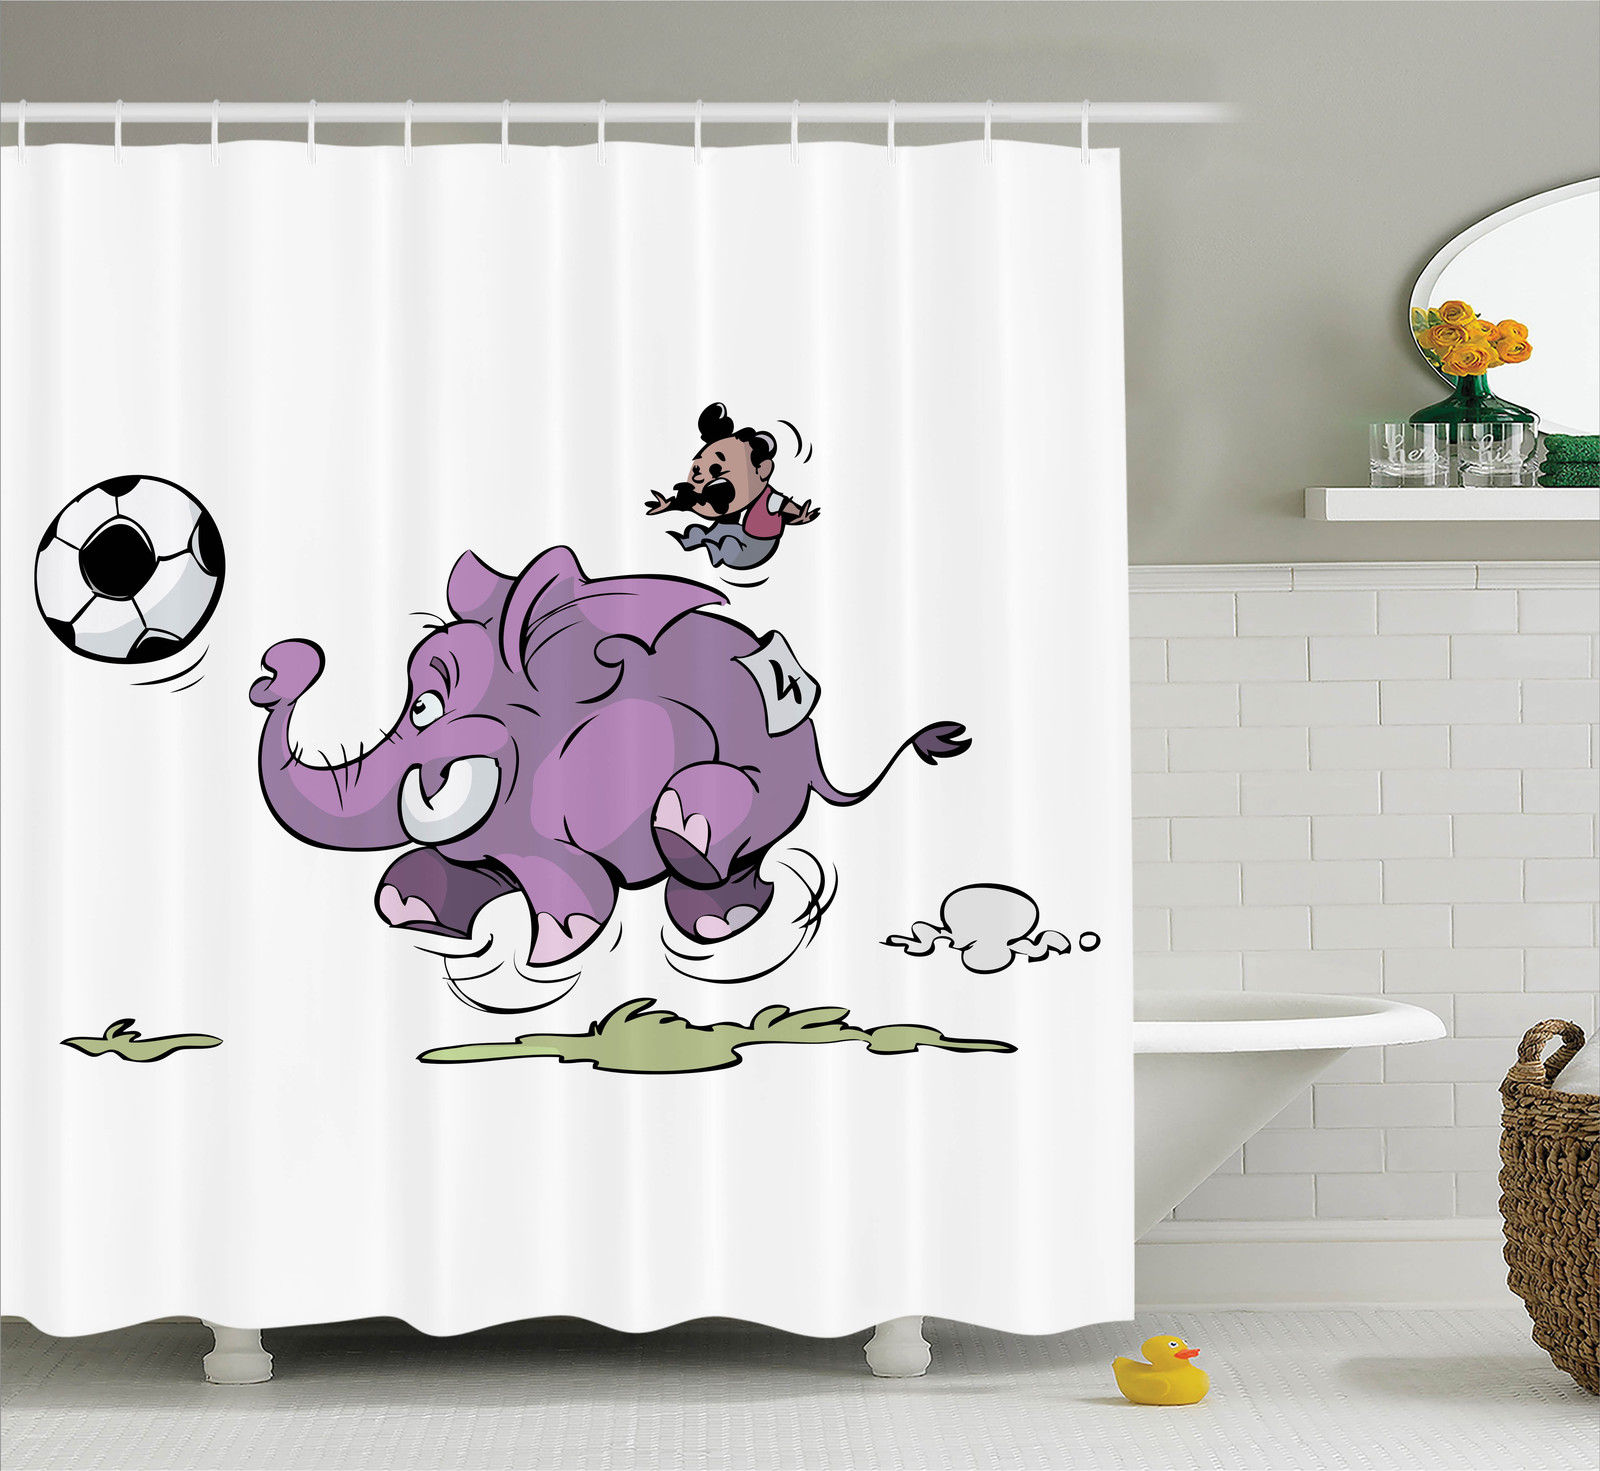 Elephants Decor Shower Curtain Set, Elephant Is Playing Soccer With A Kid Mario Moustache Sports Decor Football Print, Bathroom Accessories, 69W X 70L Inches, By Ambesonne